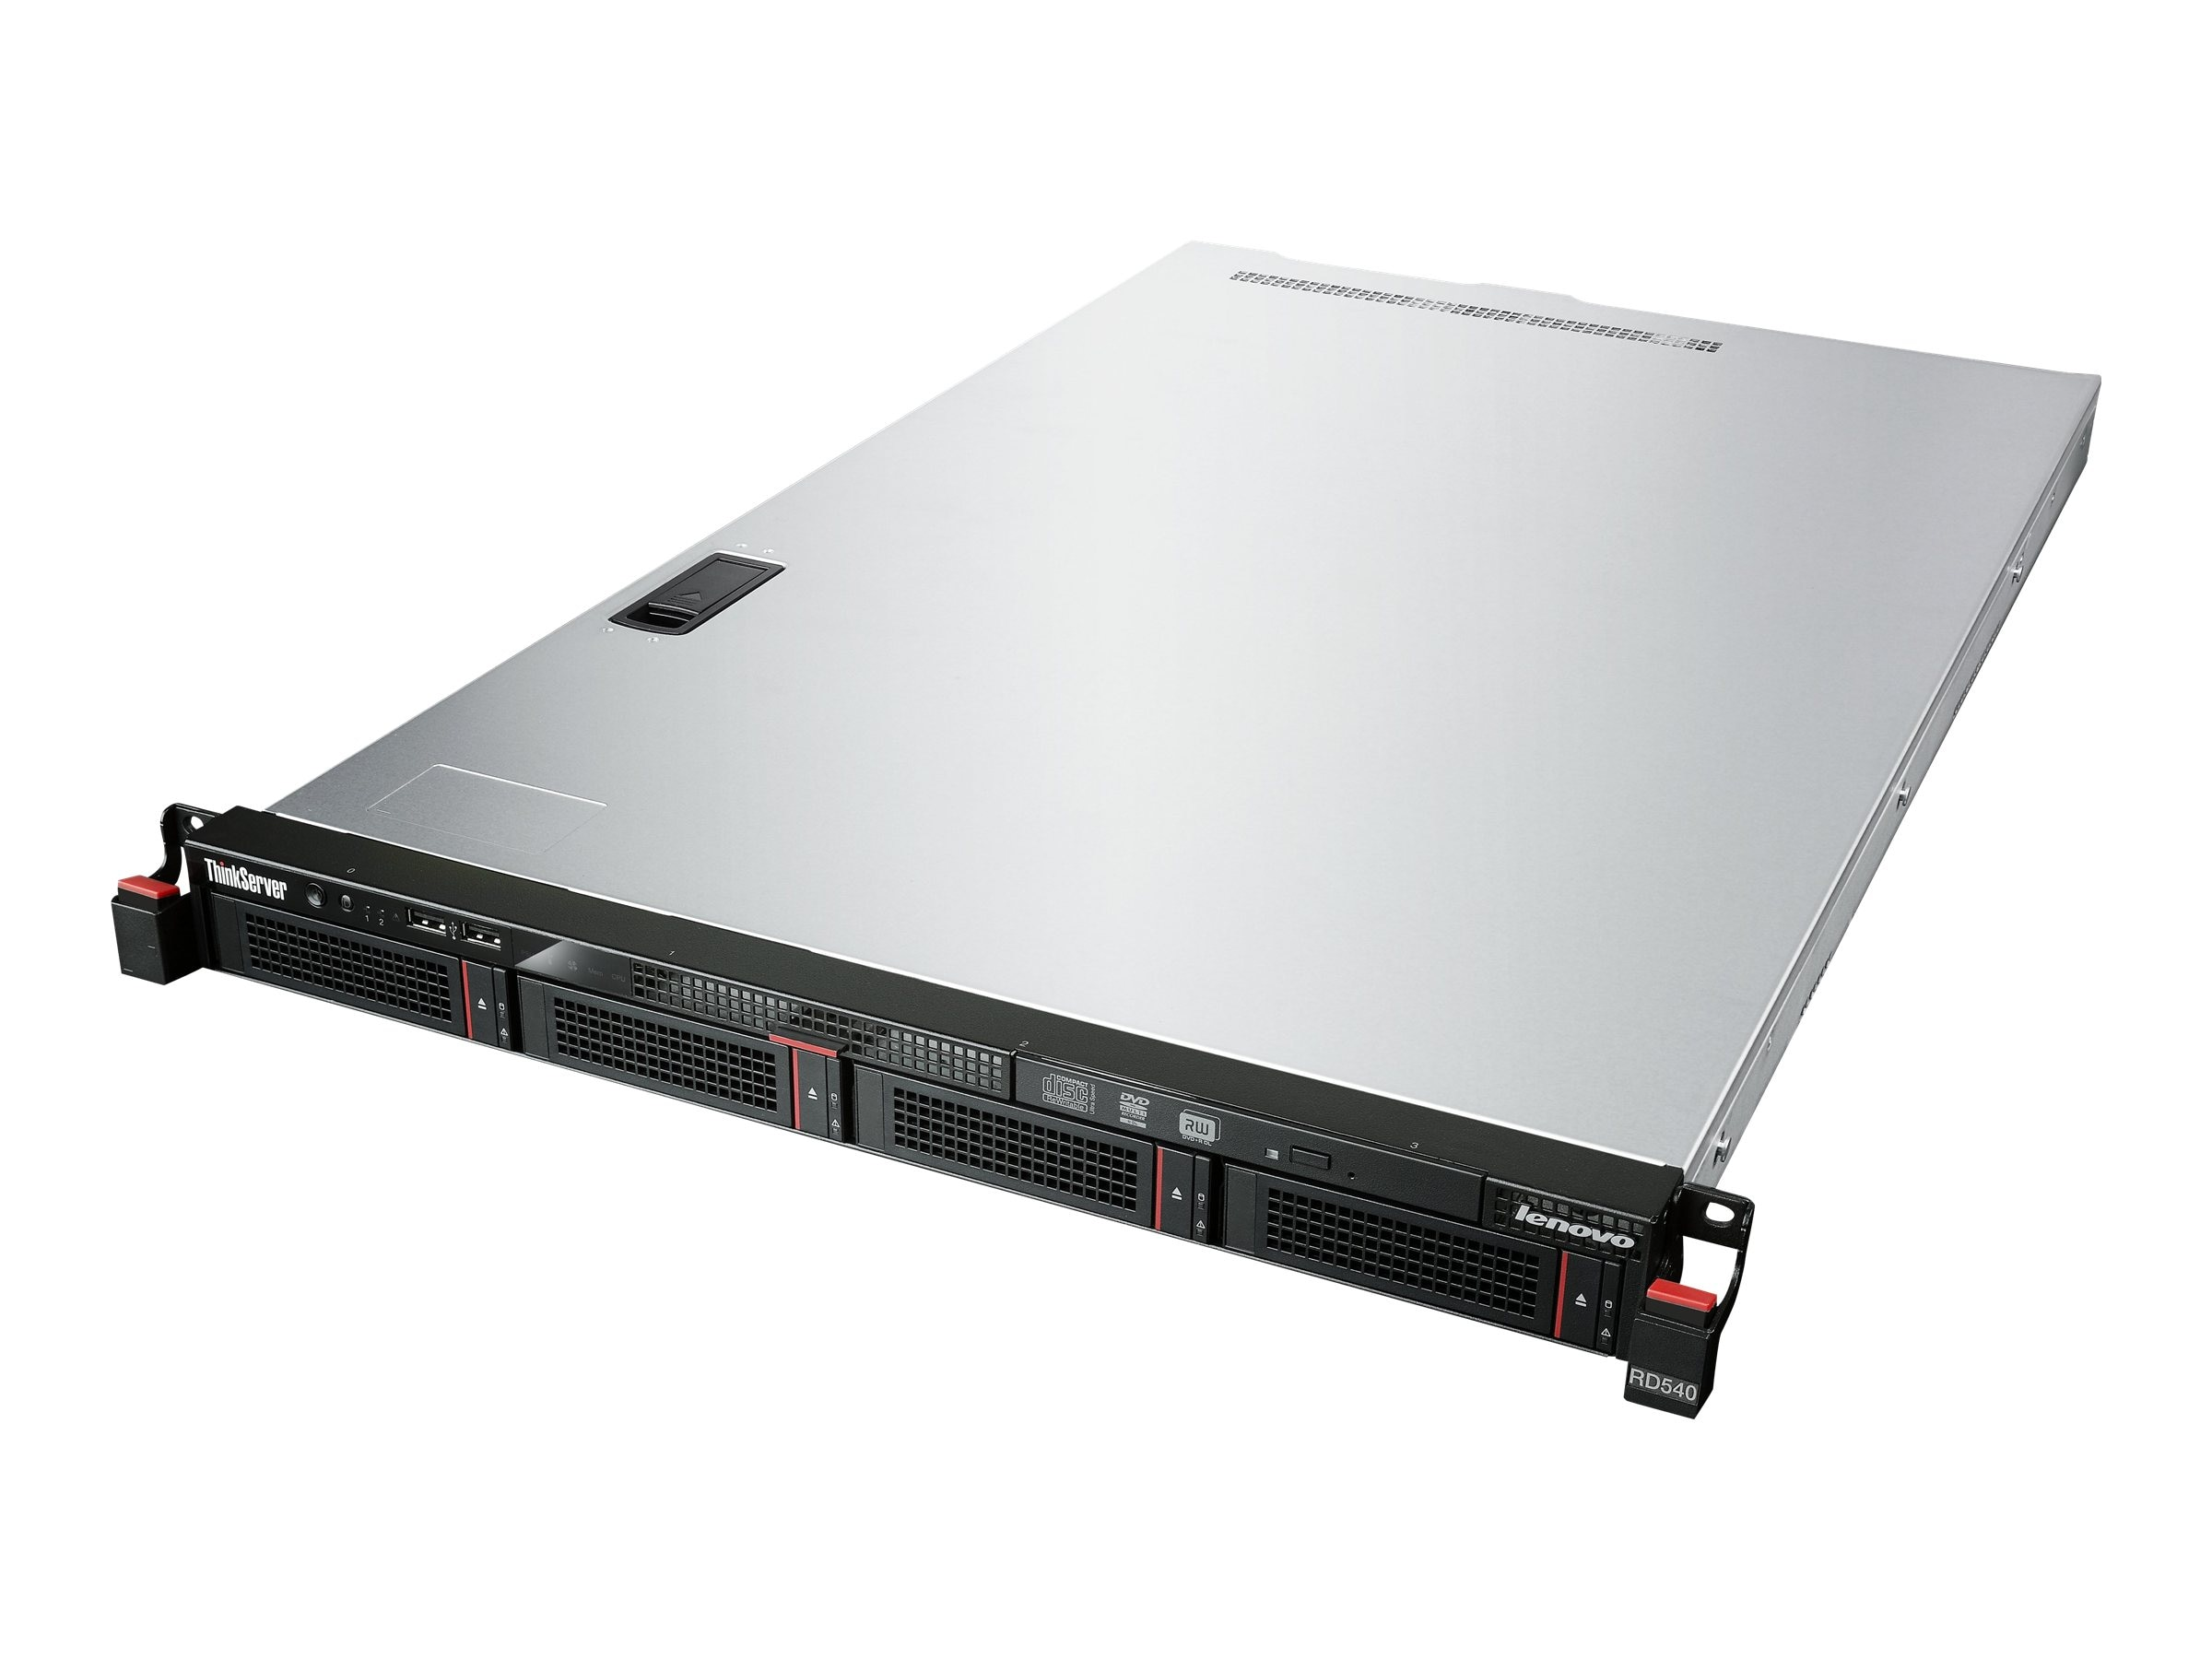 Lenovo TopSeller ThinkServer RD540 Intel 2.1GHz Xeon, 70AU000TUX, 16440297, Servers